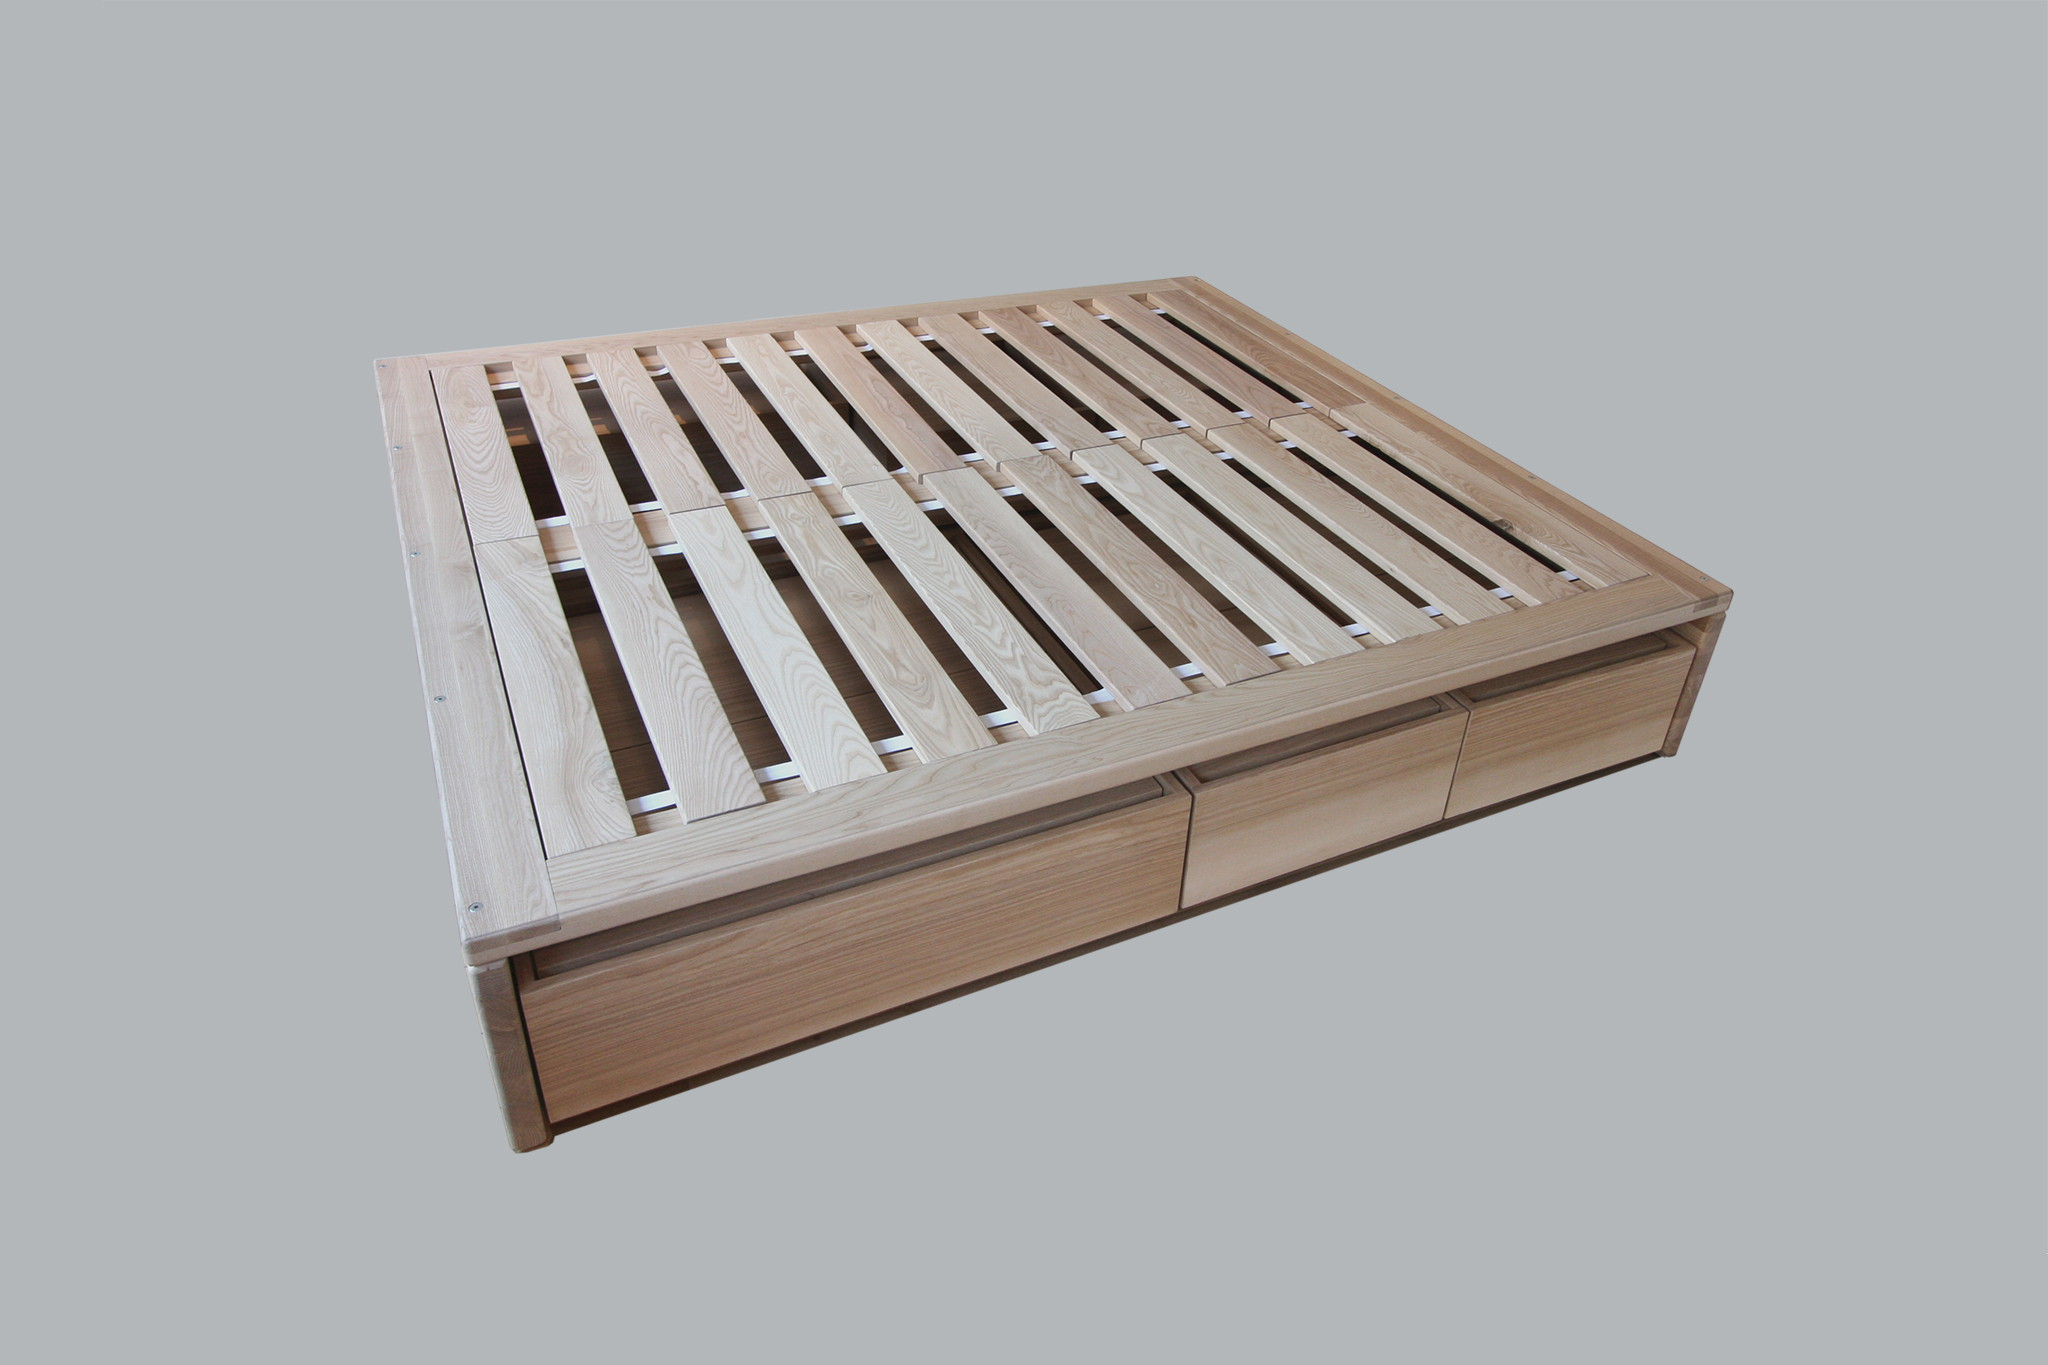 Nonjetable-Customised-Solid-Ash-Double-Bed-180x200-04